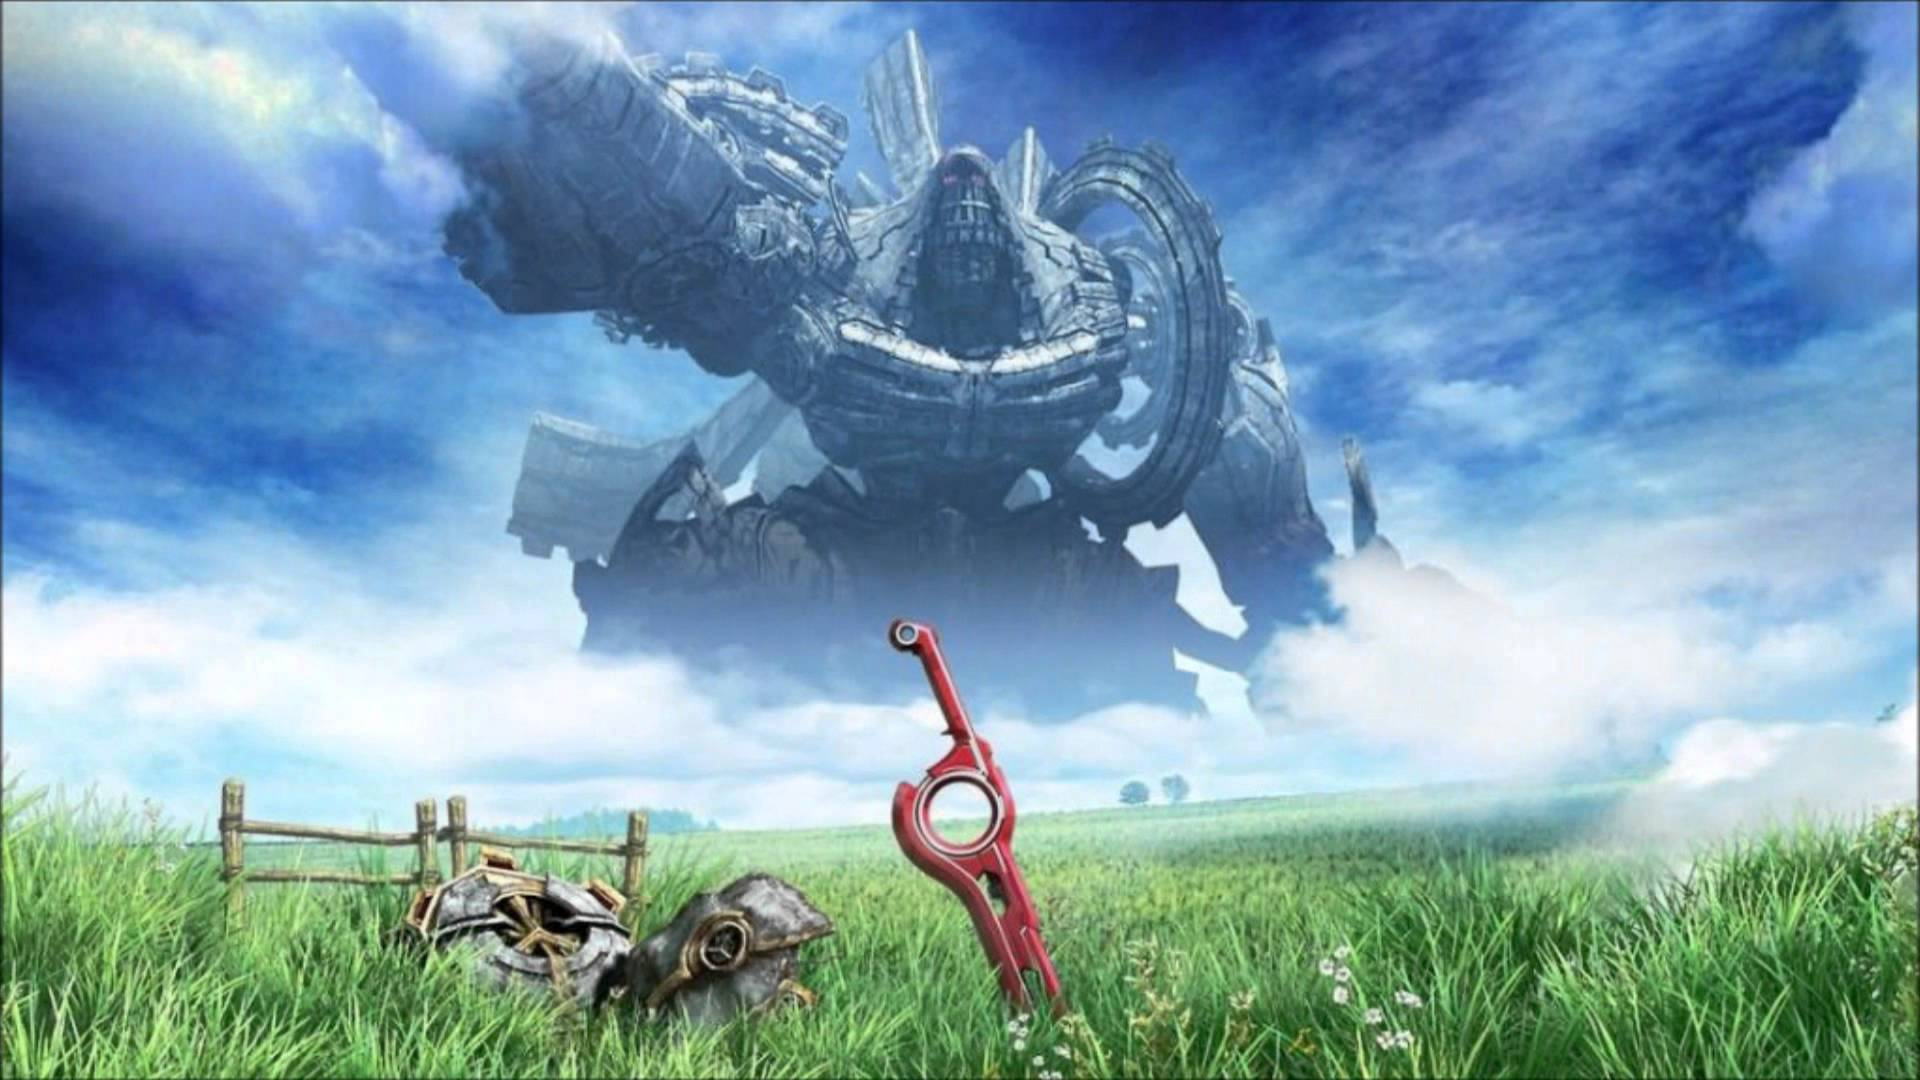 Xenoblade Chronicles Wallpapers 4USkYcom 1920x1080